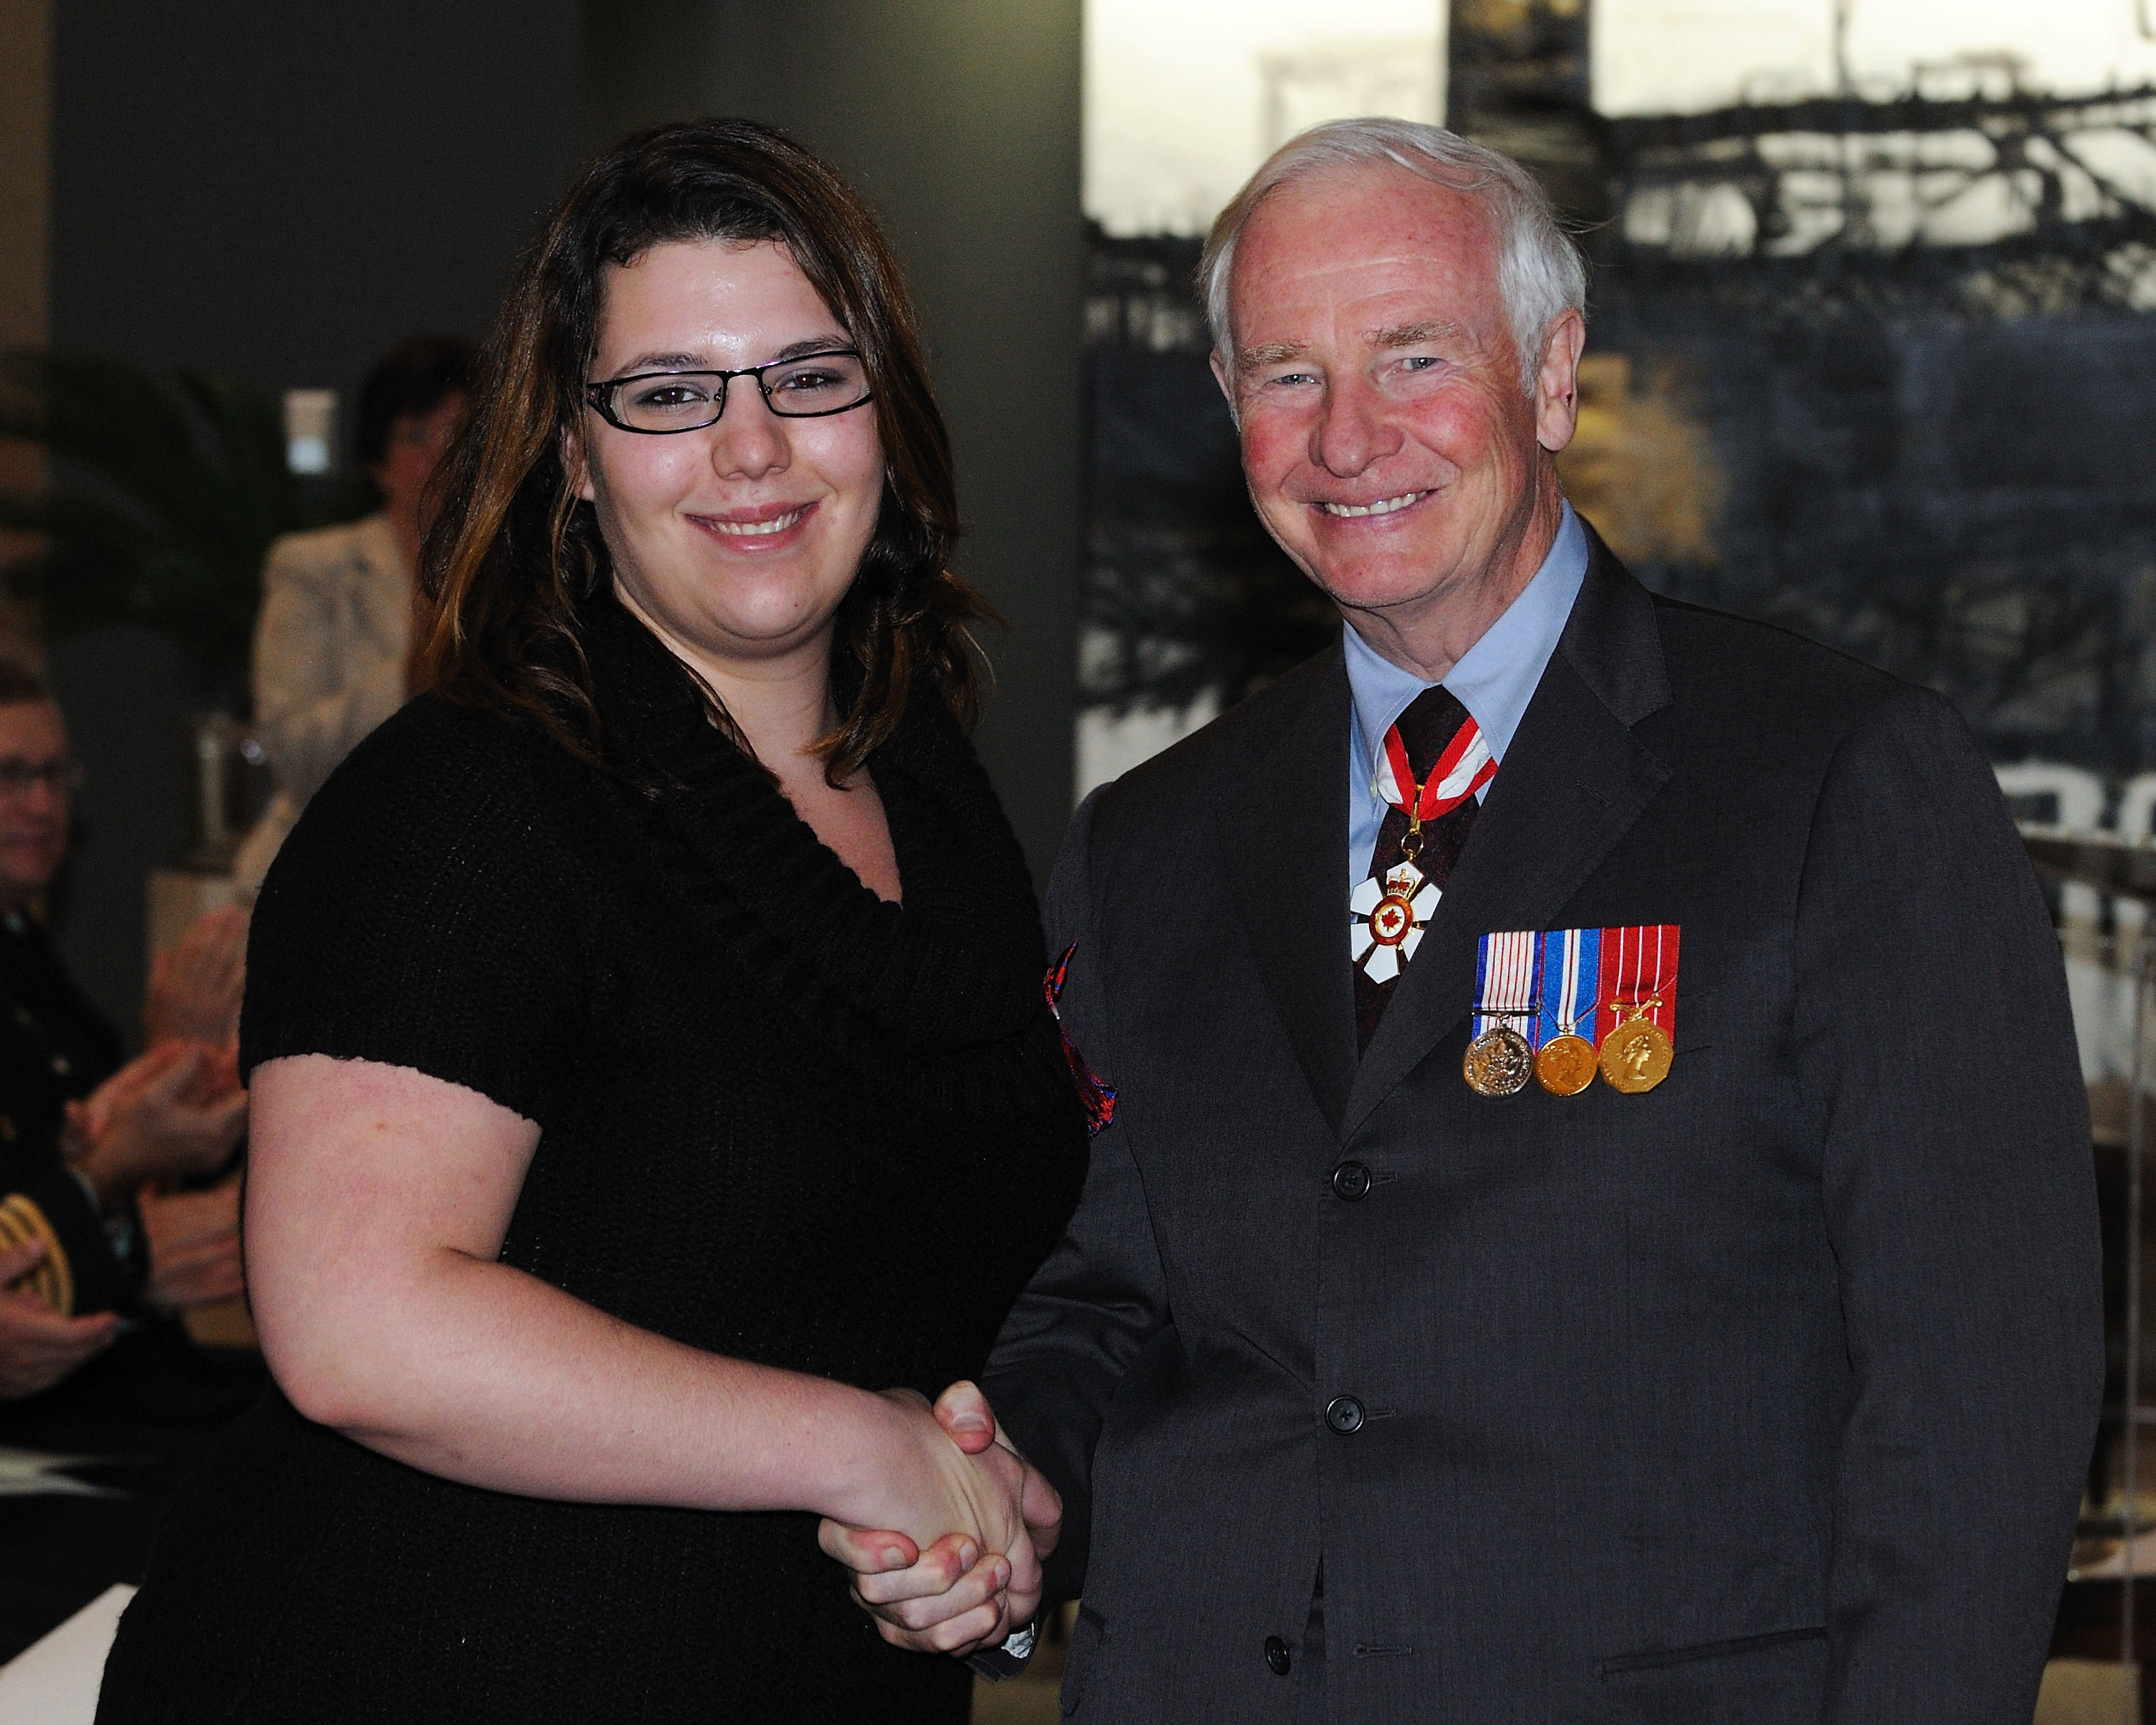 Geneviève Otis-Leduc, M.B., received the Medal of Bravery from His Excellency. On June 24, 2009, Ms. Otis-Leduc placed herself at considerable risk to rescue two friends from a possible drowning in the Batiscan River, in Notre-Dame-de-Montauban, Quebec. Ms. Otis-Leduc and her friends had been celebrating Saint-Jean-Baptiste Day when two of them decided to dive into a waterfall. The two friends wound up in turbulent waters, in the middle of the river. One of them suffered an asthma attack, panicked and grabbed onto the other. Ms. Otis-Leduc made her way to them and grabbed the friend who had difficulty breathing. She brought him safely to shore and then swam back to her second friend who, weighed down by his clothing, was in danger of drowning. Although the victim unintentionally pushed her many times below the surface, Ms. Otis-Leduc succeeded in pulling him safely to shore. Her perseverance and brave actions enabled her to save her two friends.